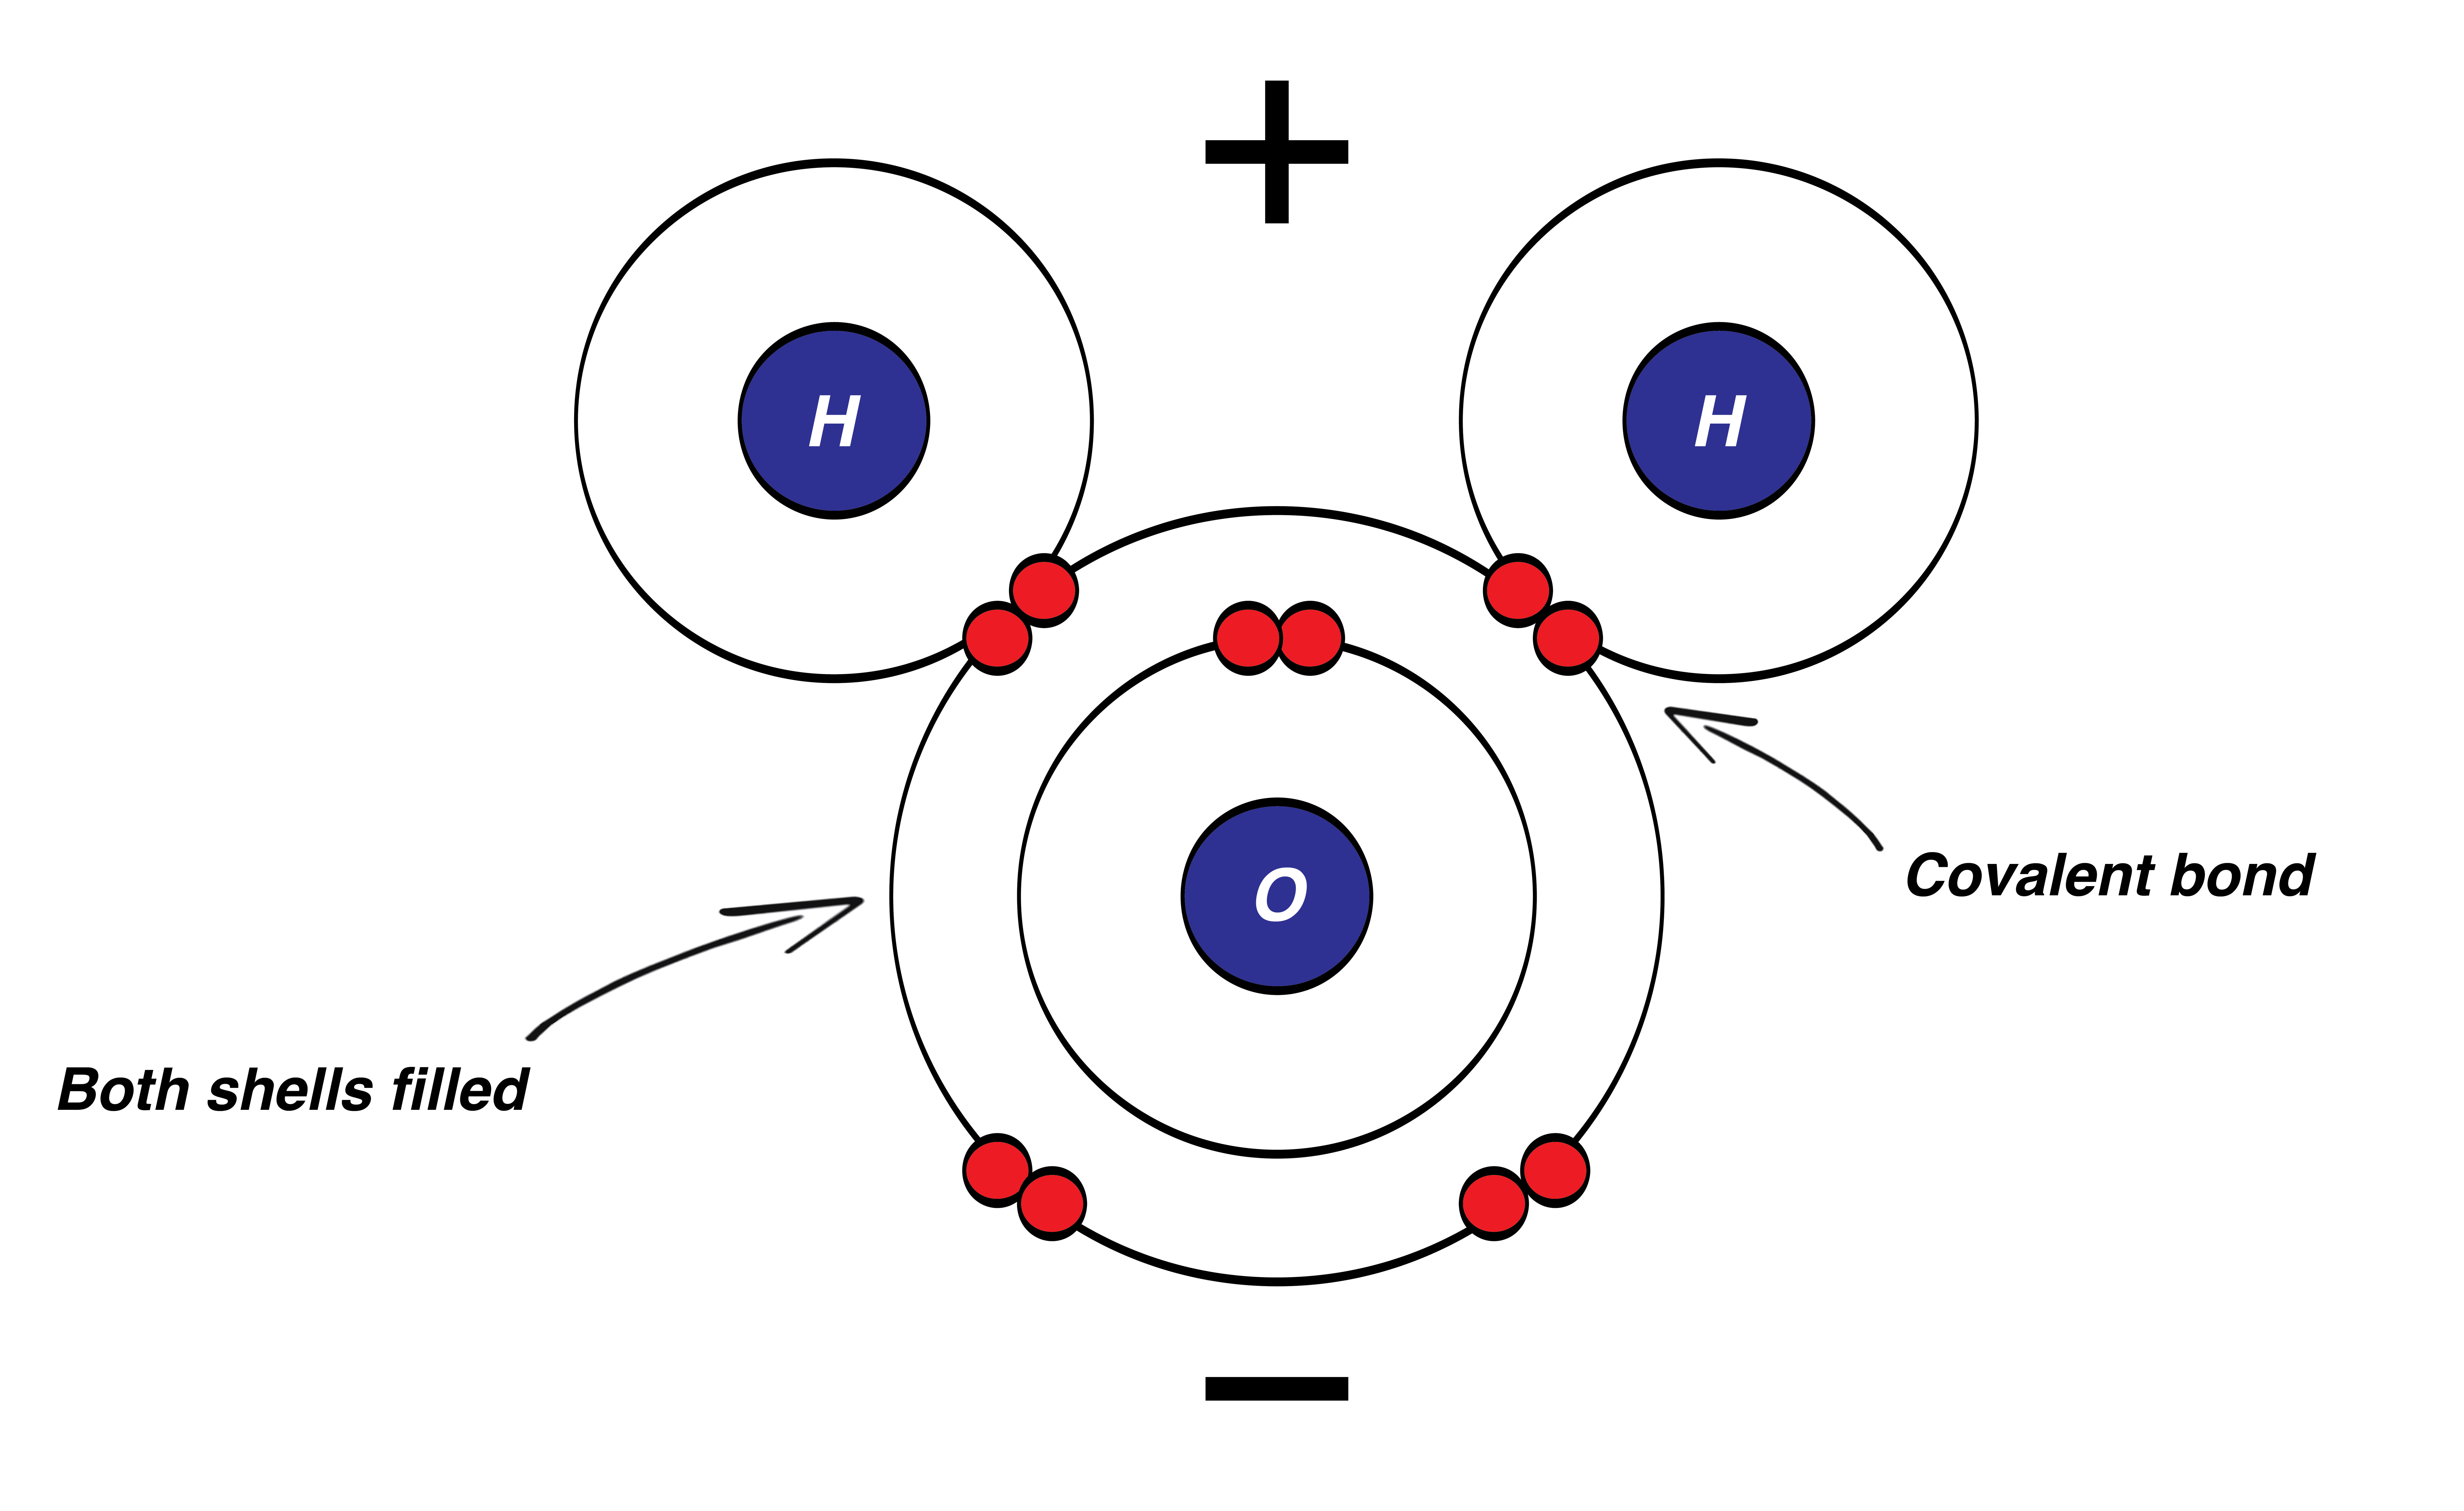 Similiar borhs model for zinc keywords bohr diagram of zinc image collections how to guide and ccuart Choice Image